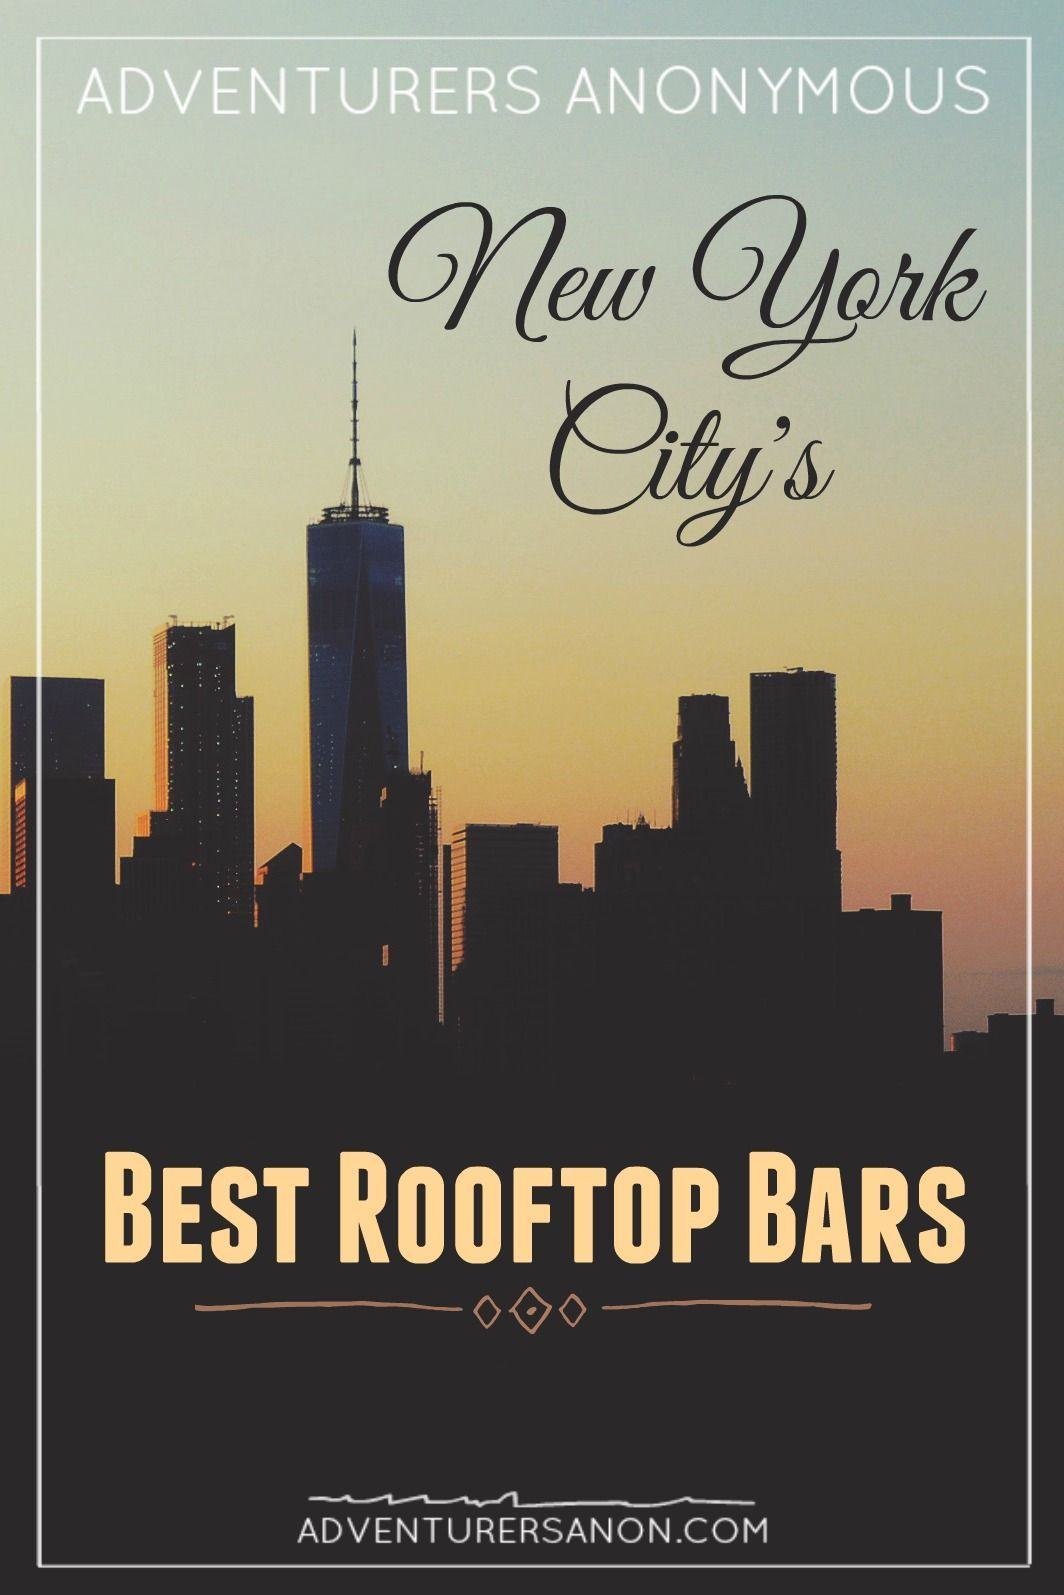 New York City's BEST Rooftop Bars | NYC Bar Guide // Adventurers Anonymous // #rooftopbars #nyc #newyorkcity #nycbars #bestbars #nyctravelguide #newyork #newyorkbars #newyorktravelguide